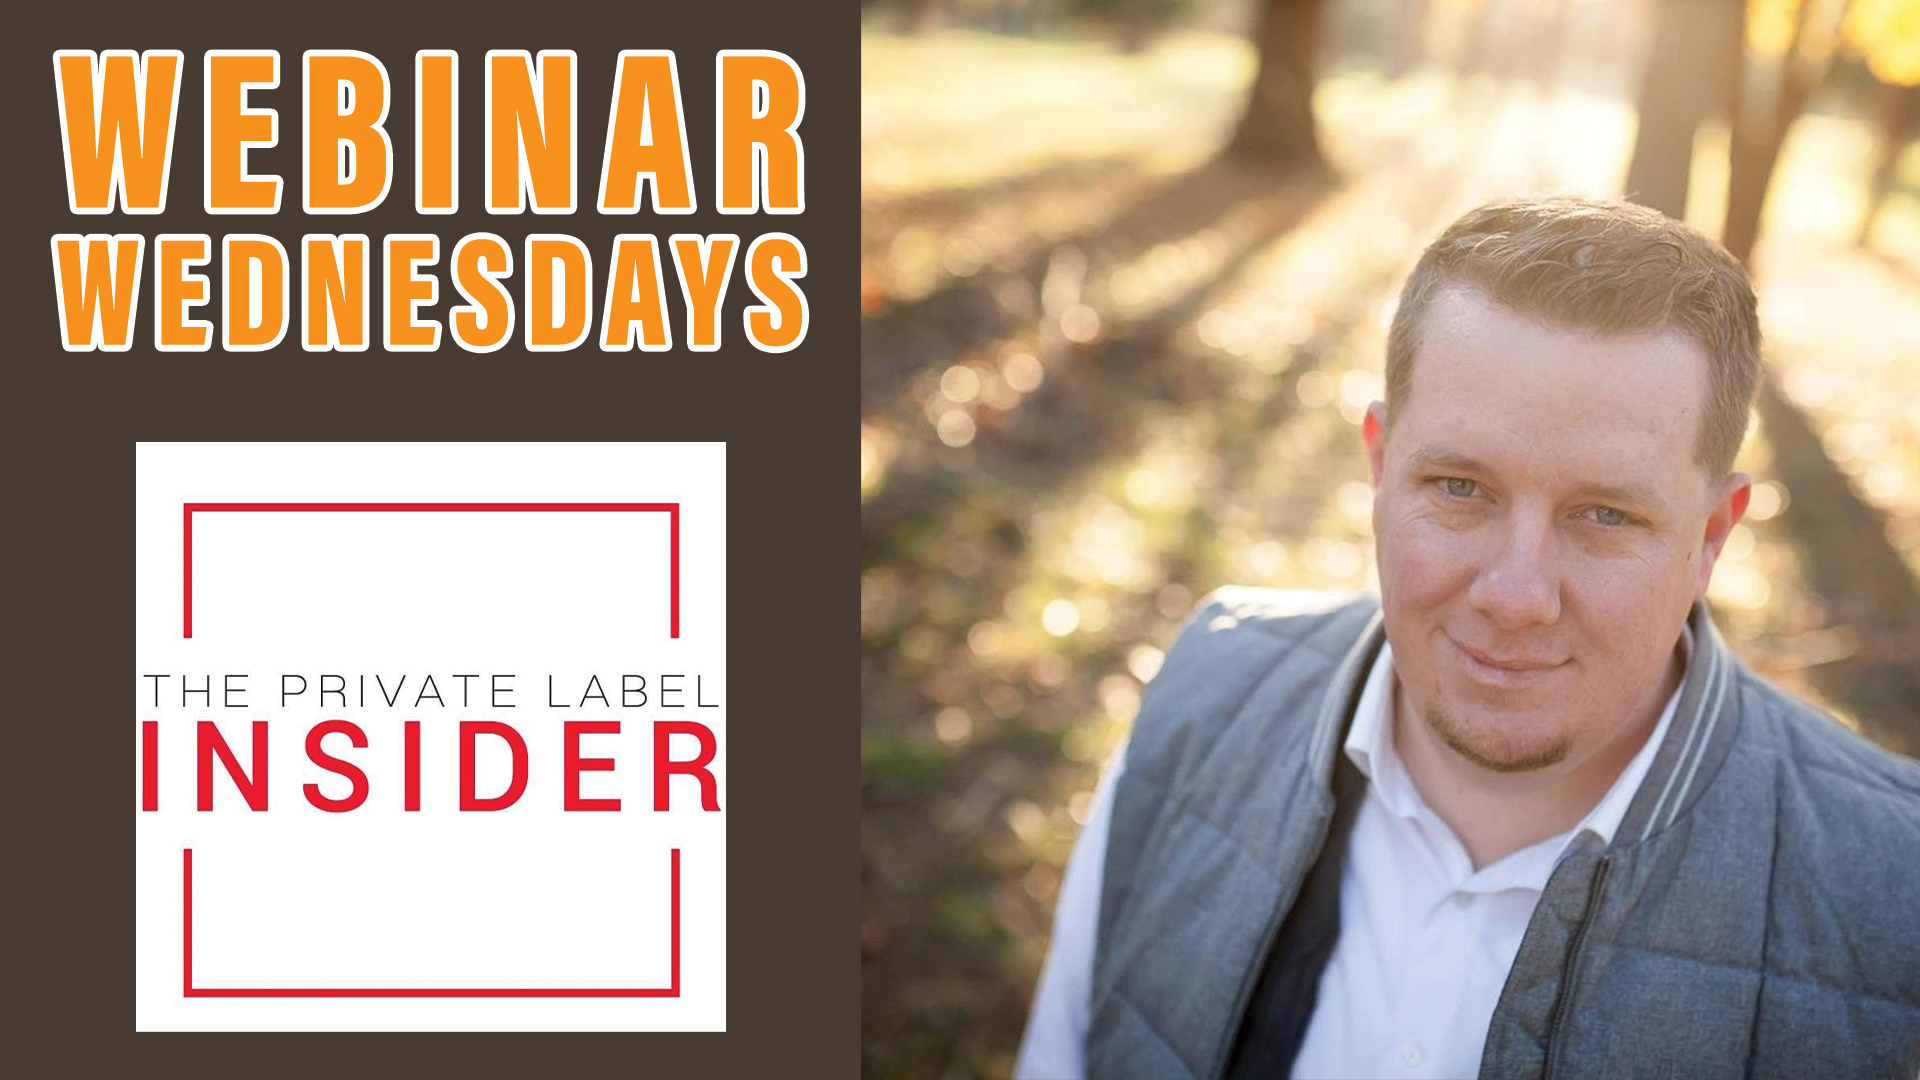 WEBINAR The Private Label Insider